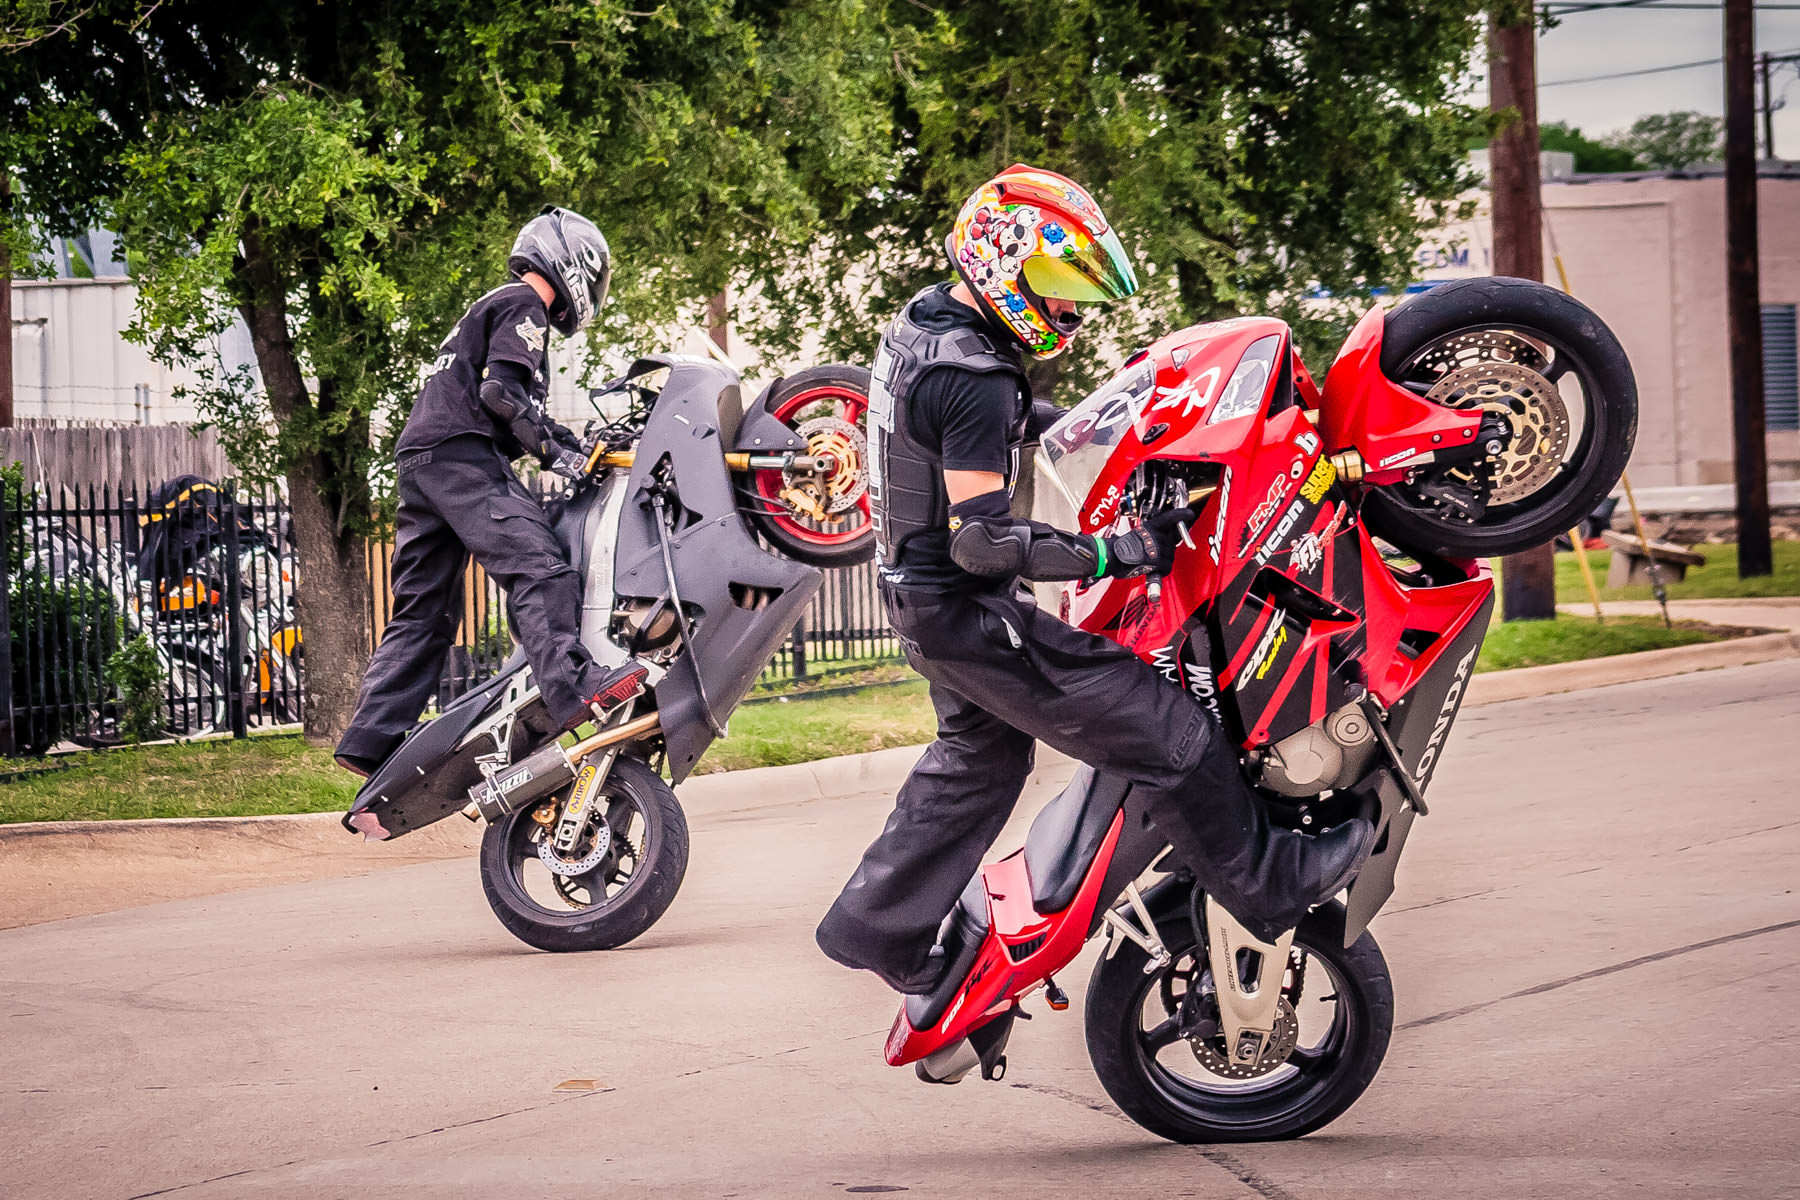 Stunt performers at a Dallas motorcycle shop.